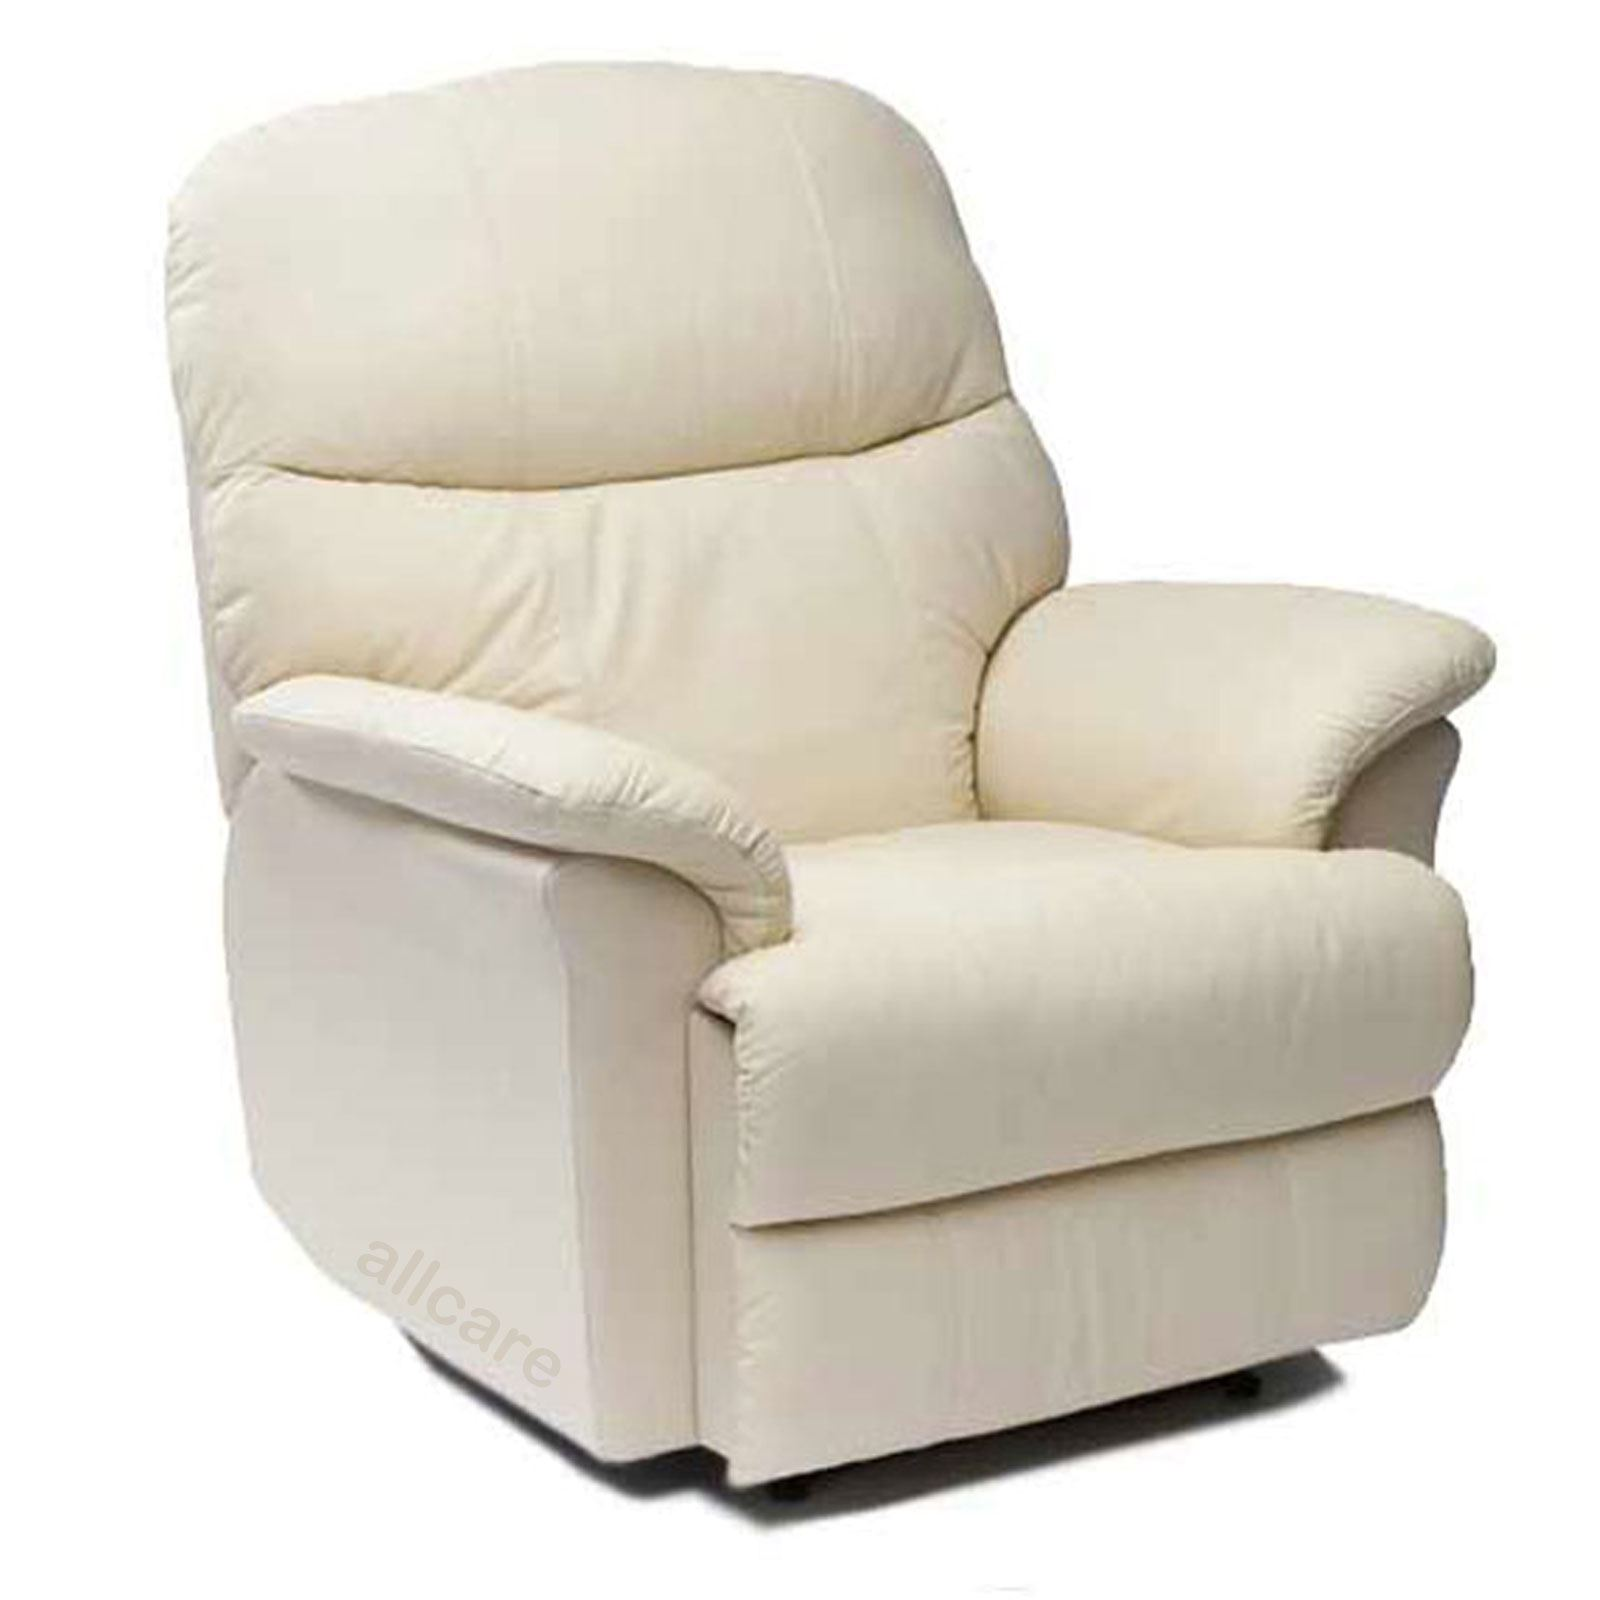 luxury leather recliner chairs. restwell-lars-leather-electric-riser-recliner-chair-dual- luxury leather recliner chairs c